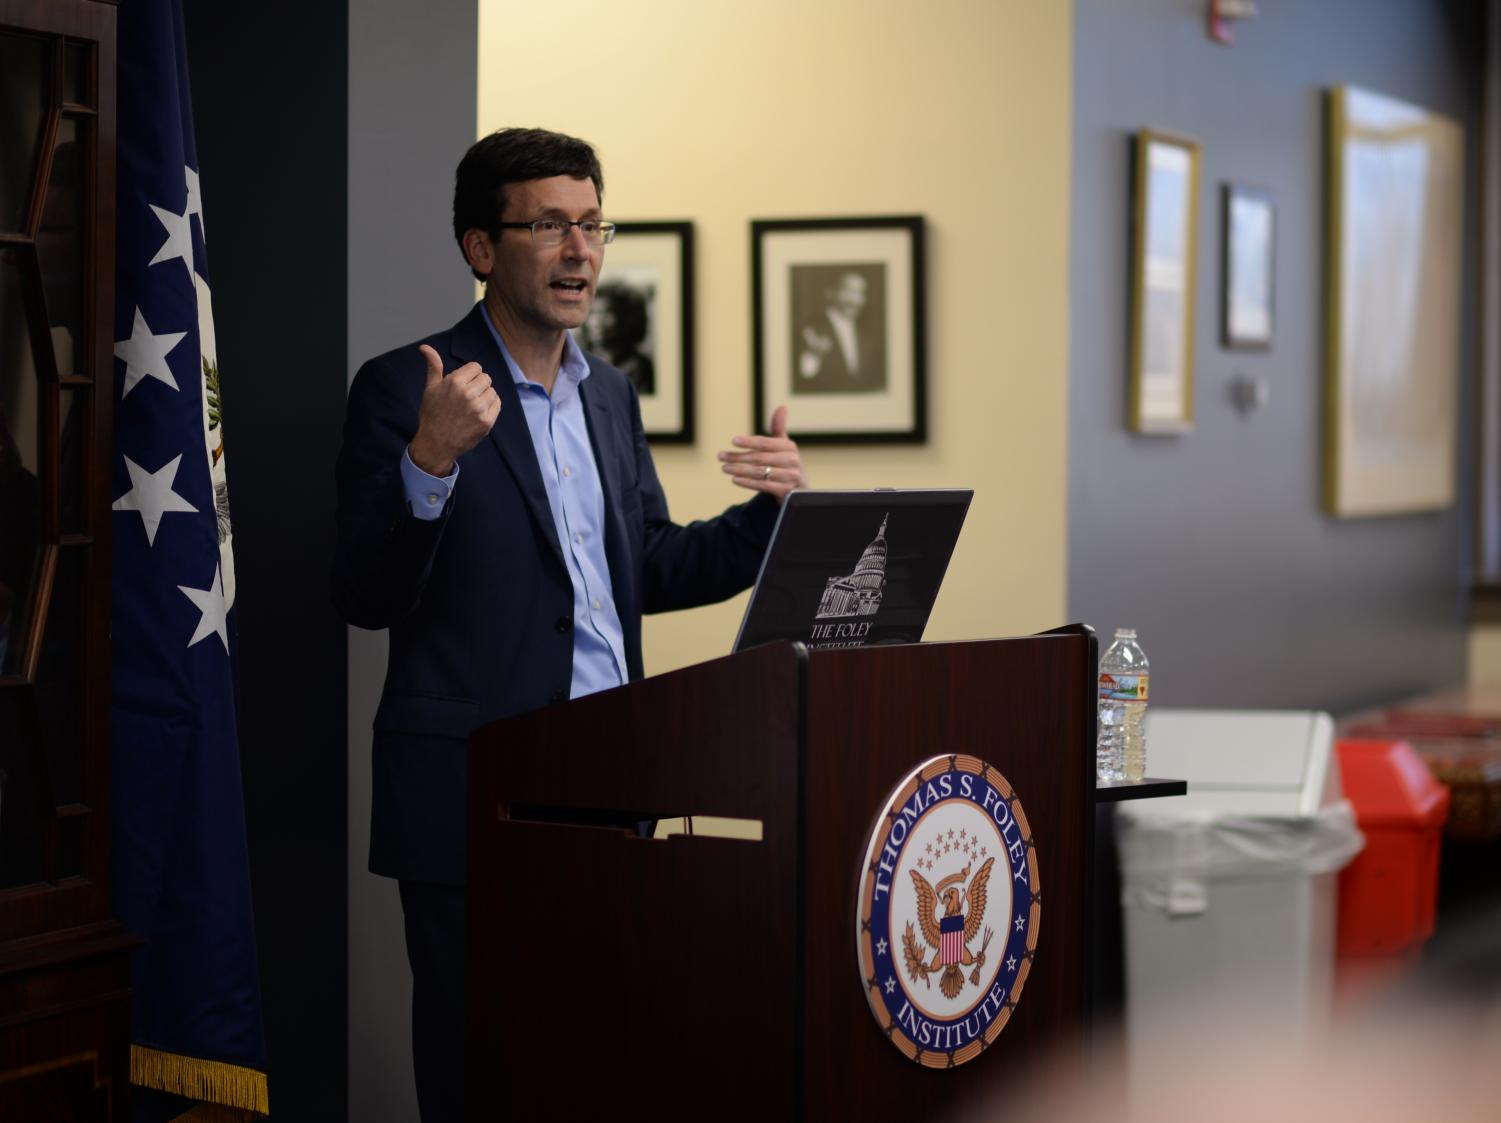 Washington Attorney General Bob Ferguson details the multiple lawsuits he has been part of against the Trump administration Thursday during a Thomas S. Foley talk in Bryan Hall.